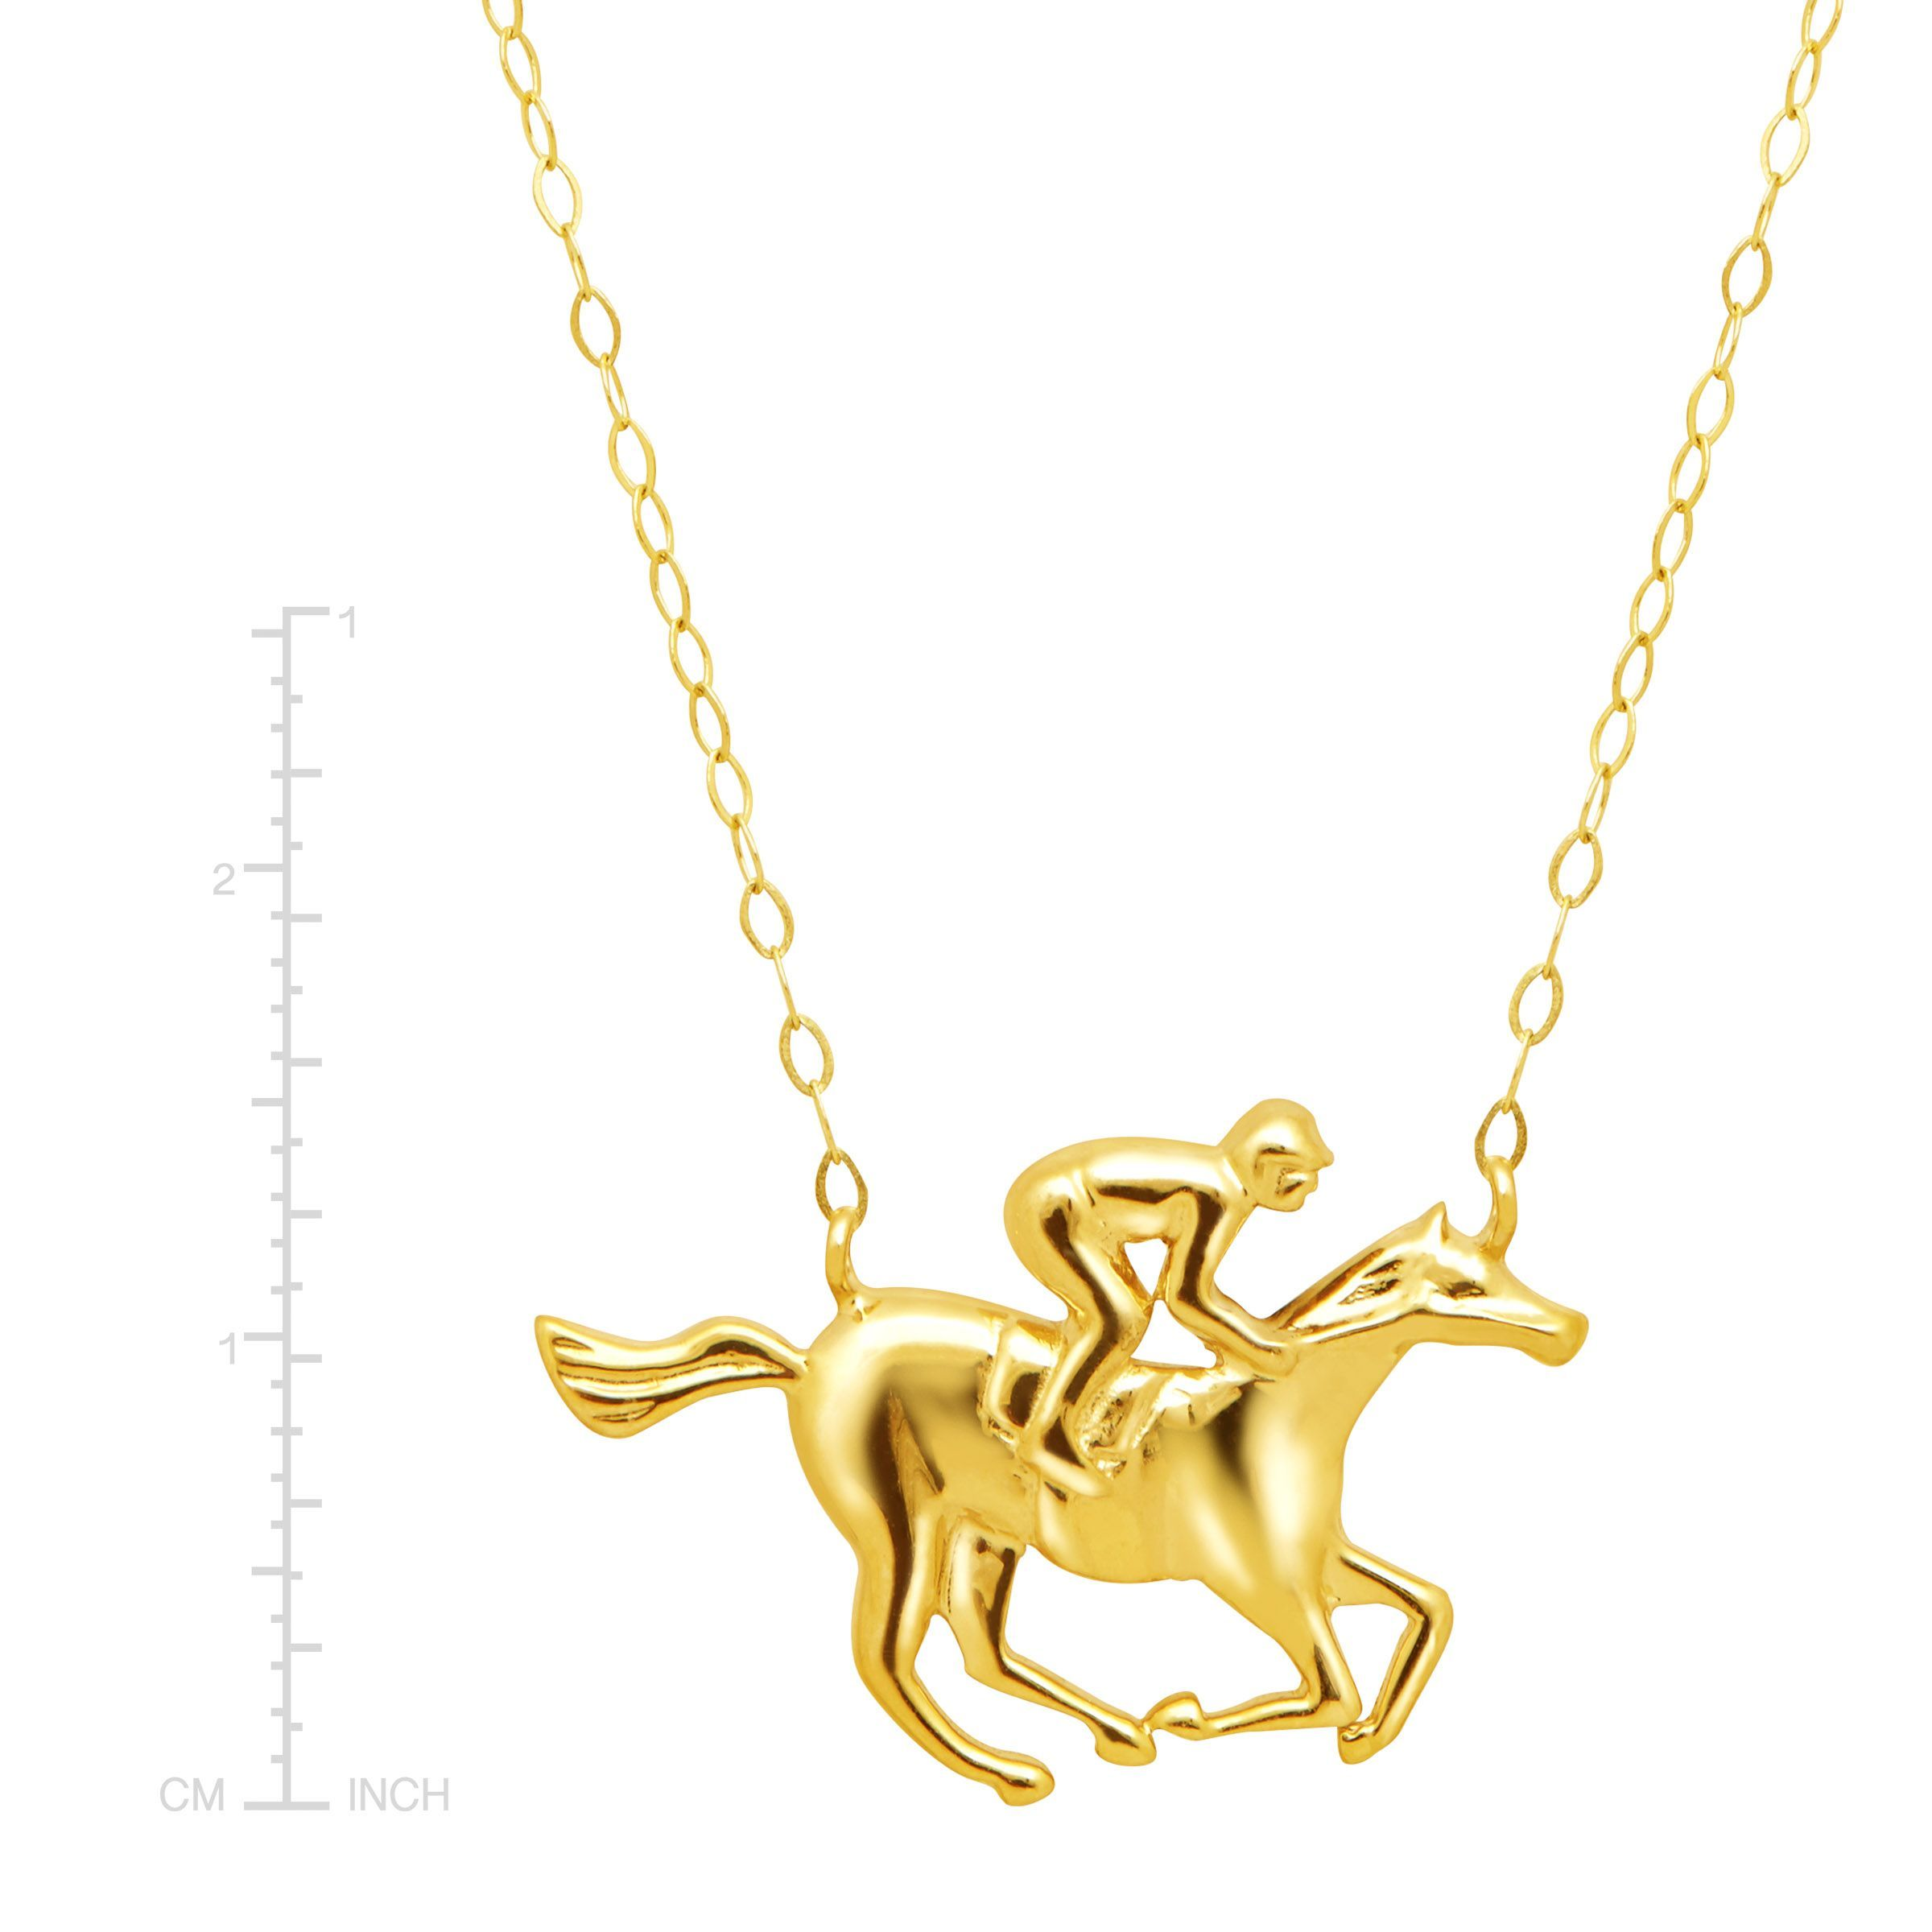 jewels chain r il fullxfull grams product necklacerope fashion horse j gold lariat yellow high adjustable necklace